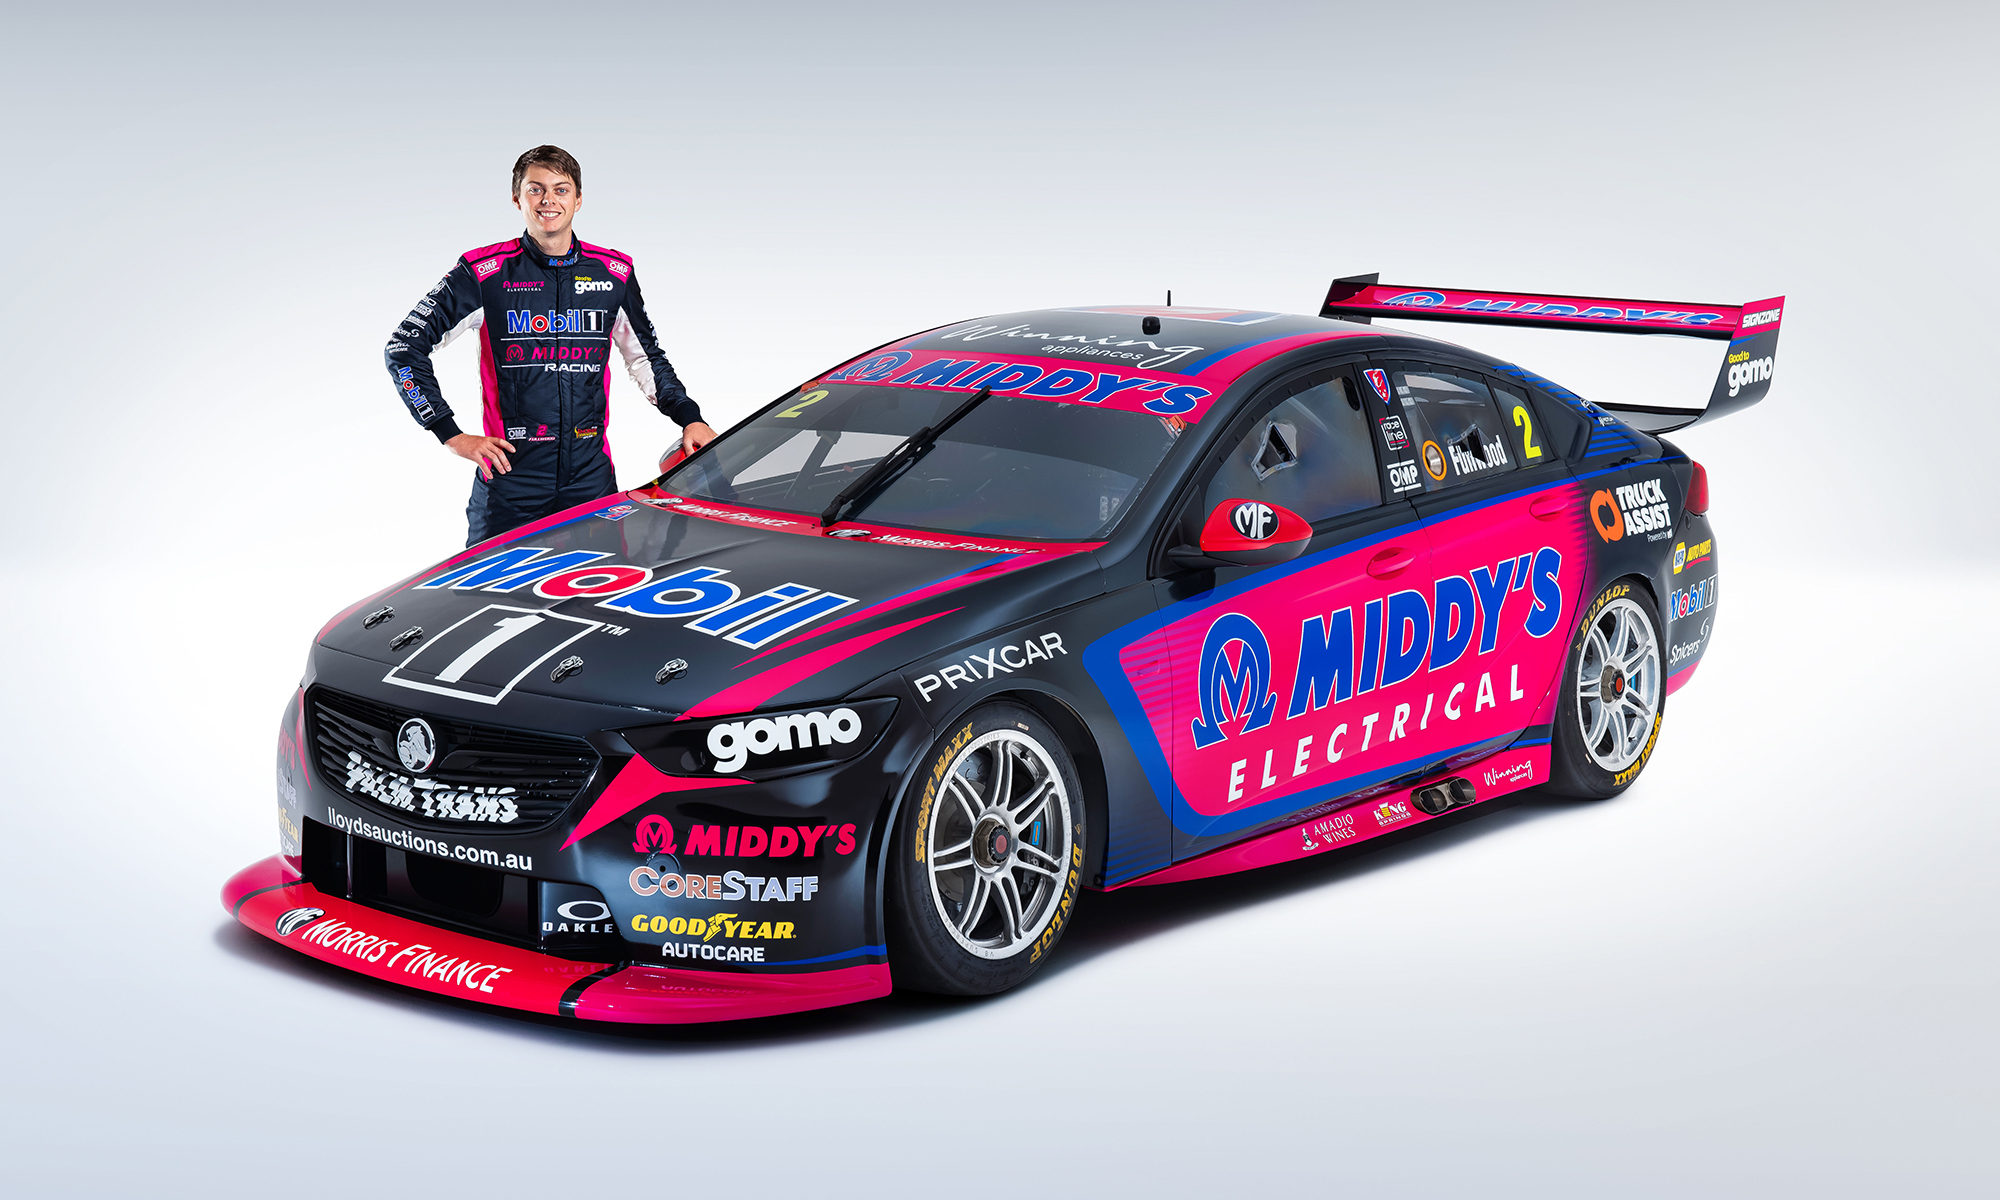 Bryce Fullwood with his new look Mobil 1 Middy's Racing No. 2.